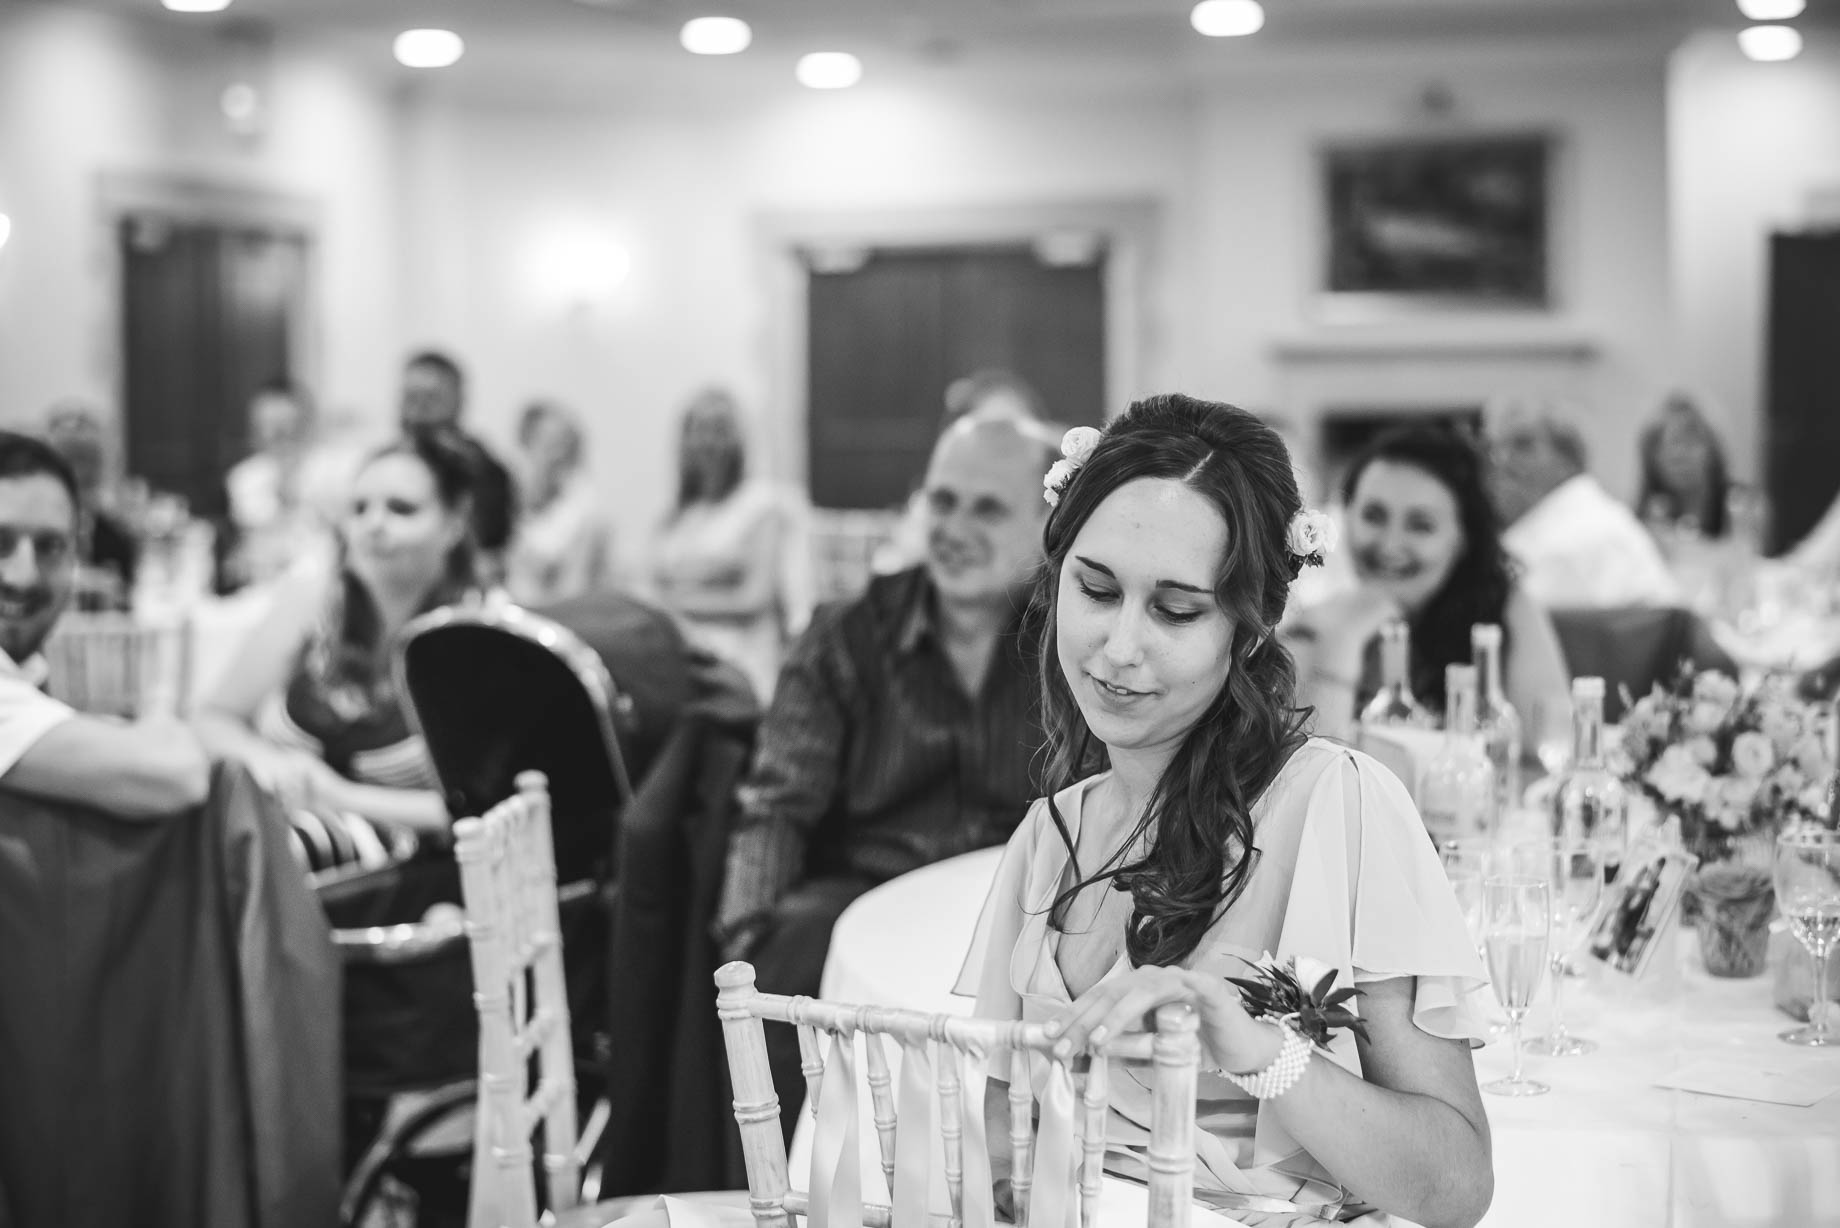 Luton Hoo wedding photography by Guy Collier Photography - Lauren and Gem (142 of 178)